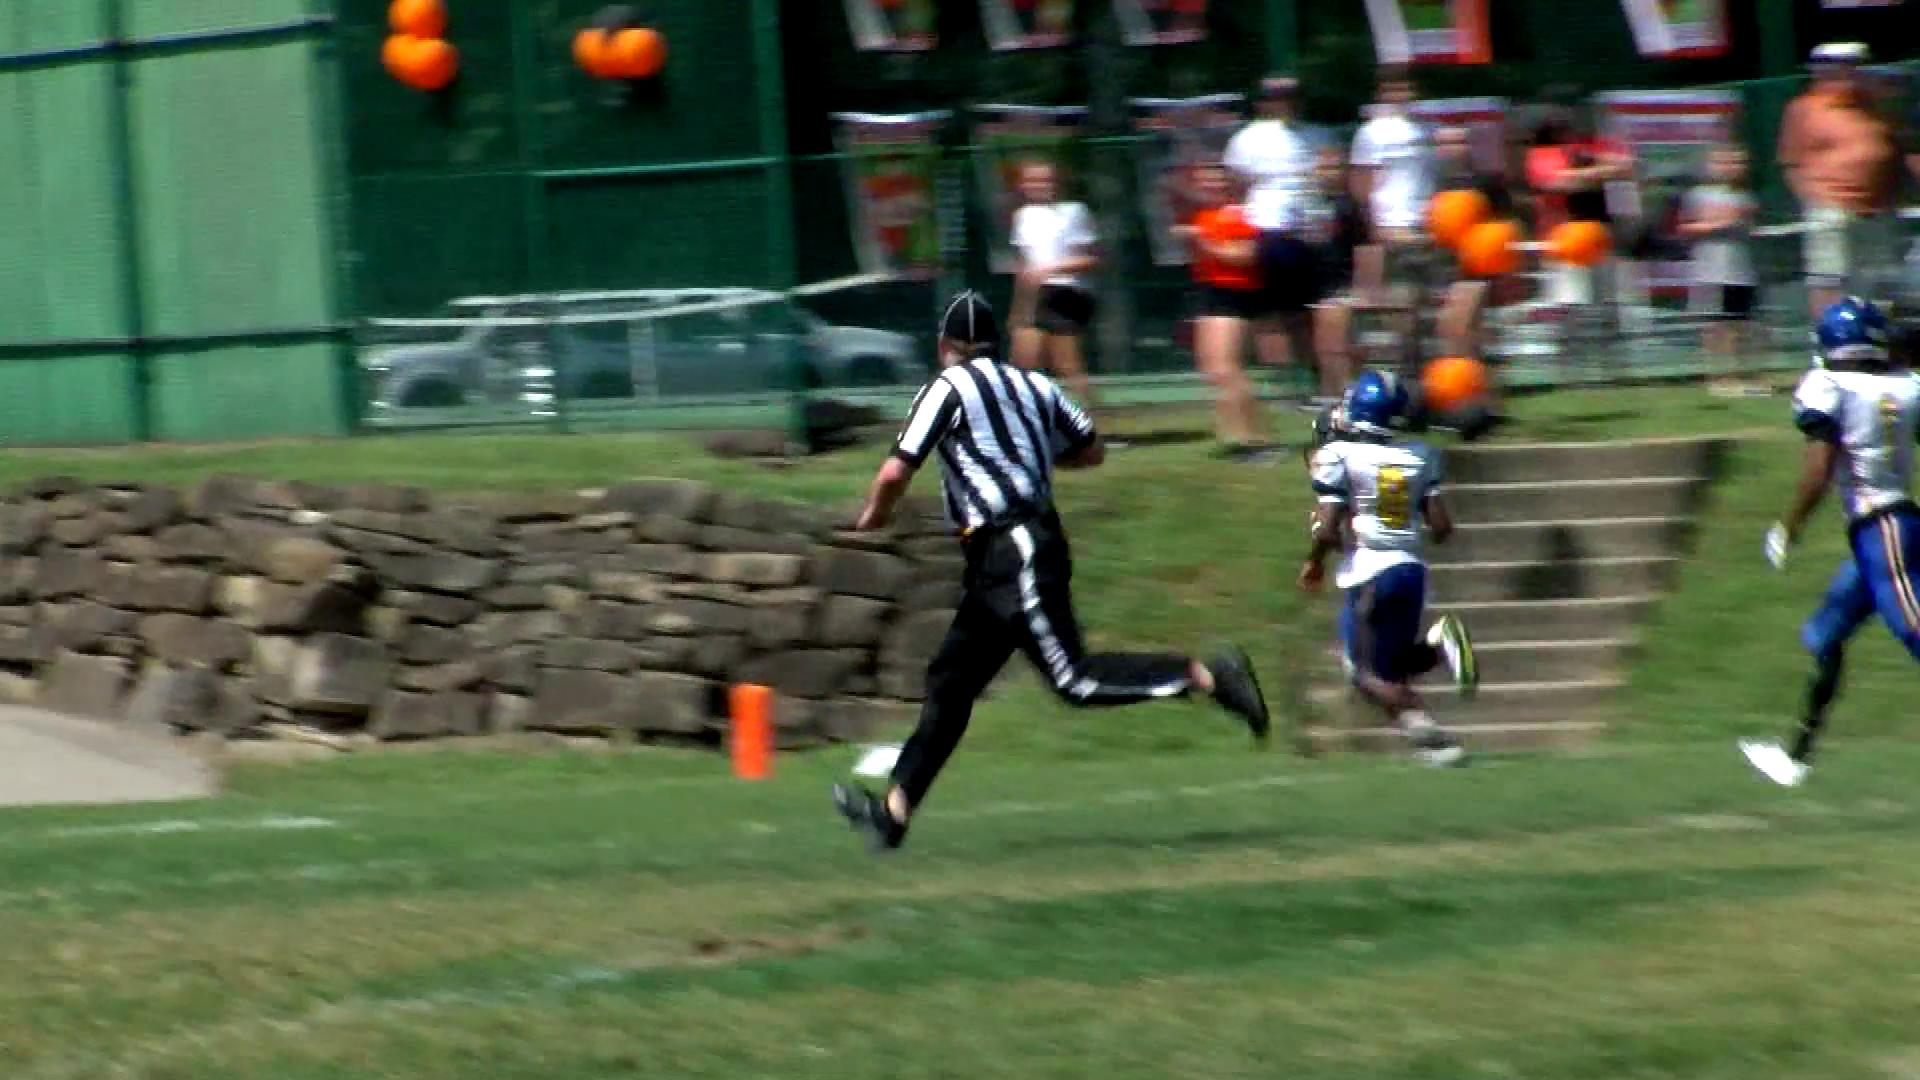 9.1.18 Video - Linsly vs. Westinghouse - High school football